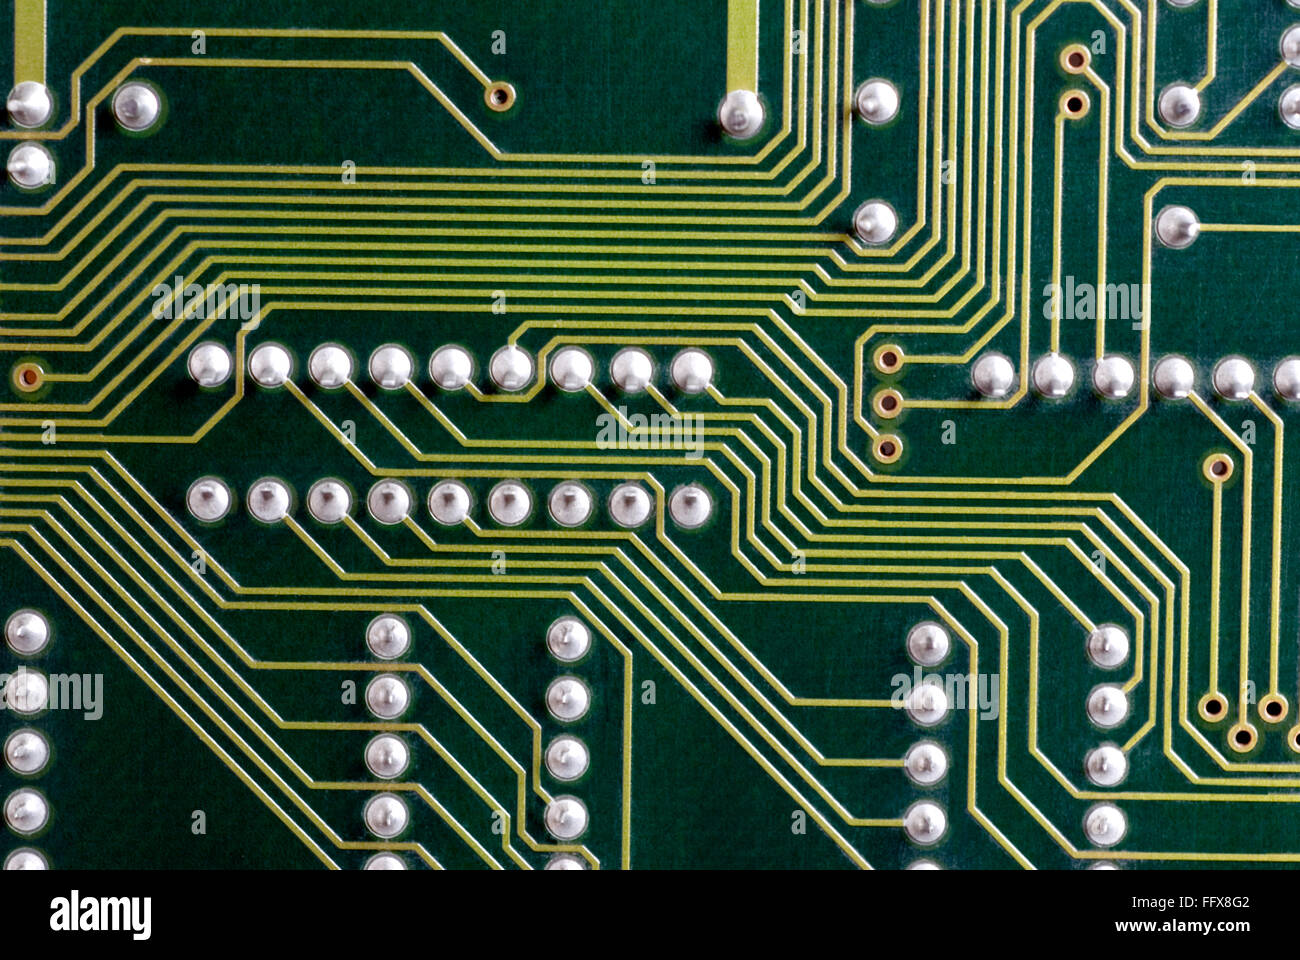 Printed Circuit Board Pcb Stock Photos 13 Royalty Free Image Green Electronic Yellow Tracks